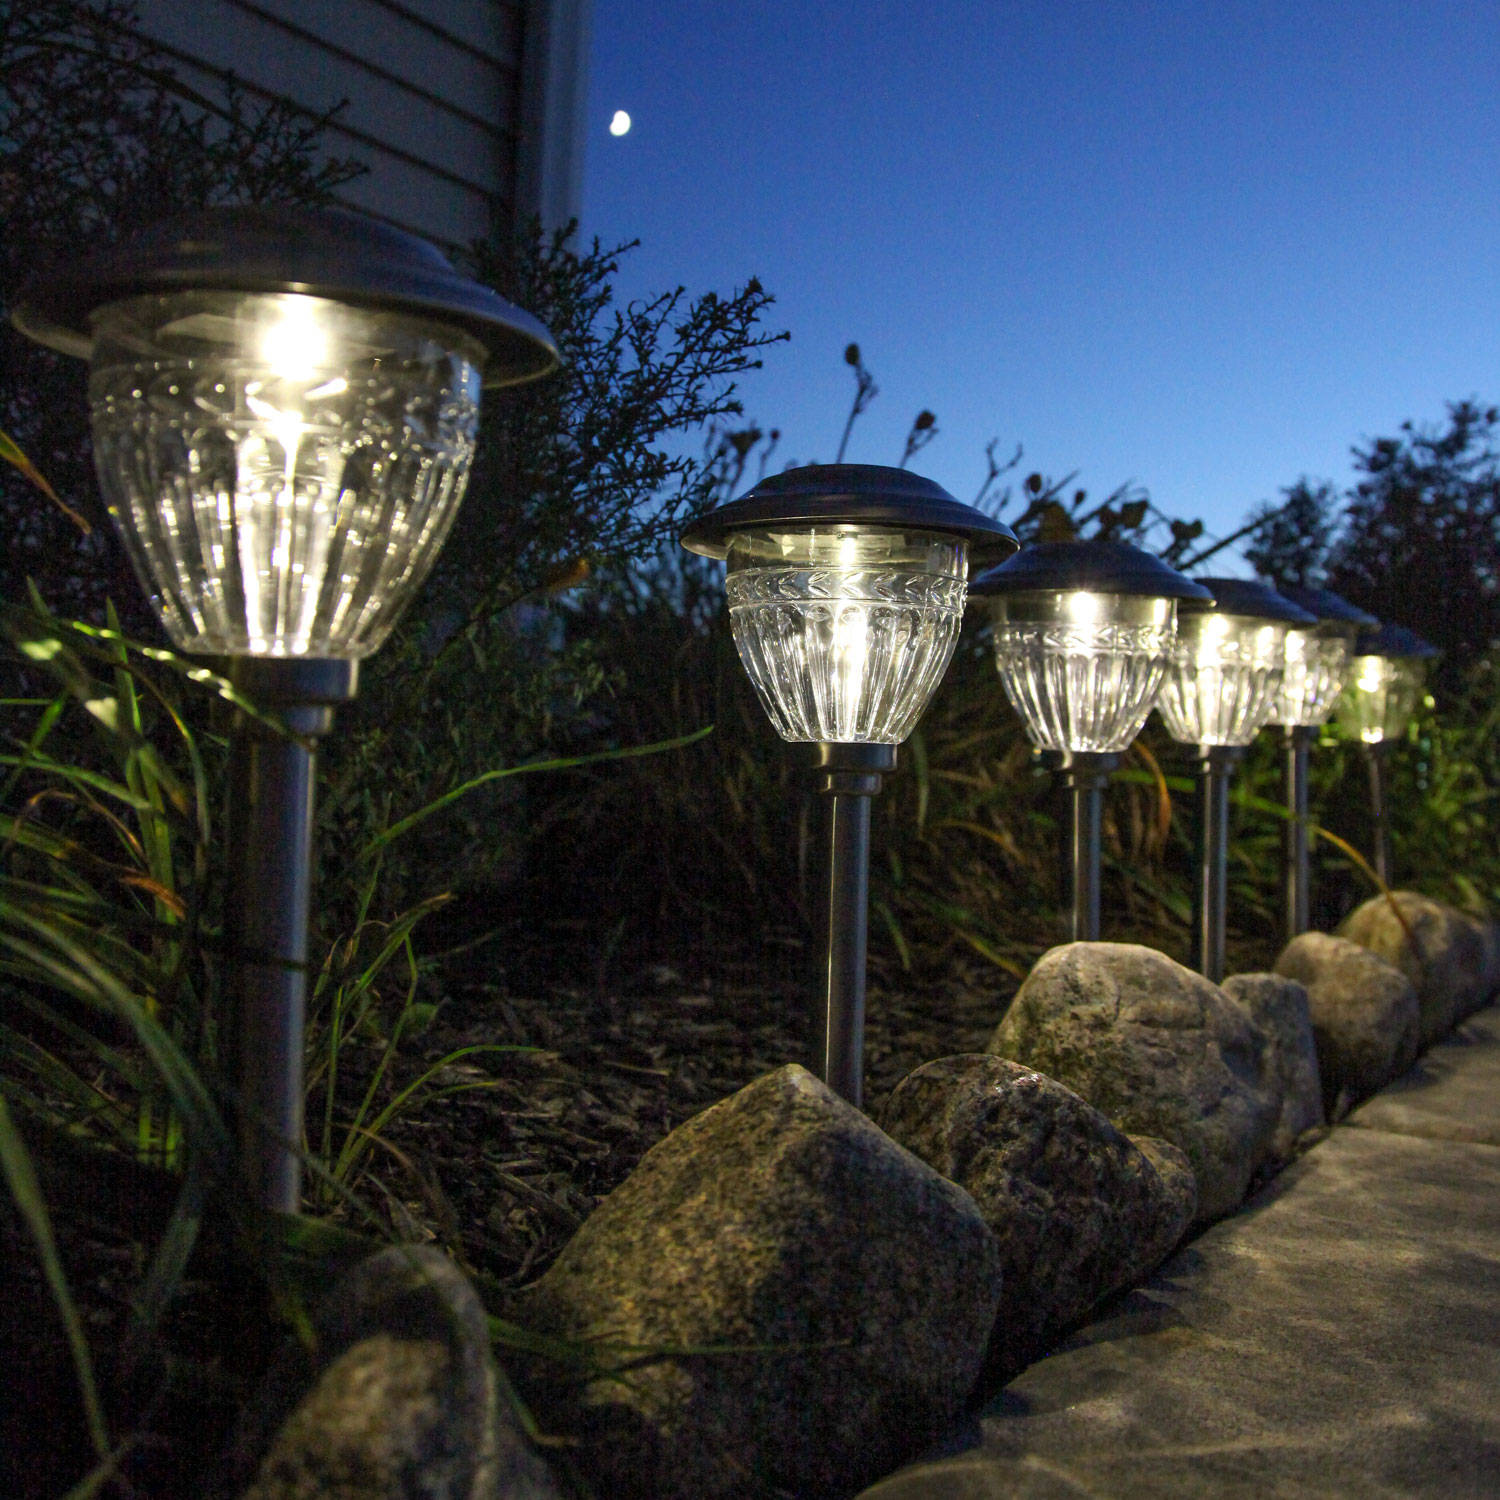 Outdoor Solar Path Lights picture on warm white stainless steel solar path lights p 37417 with Outdoor Solar Path Lights, Outdoor Lighting ideas 4d9c5f223a37ab4270a3e55853905ced